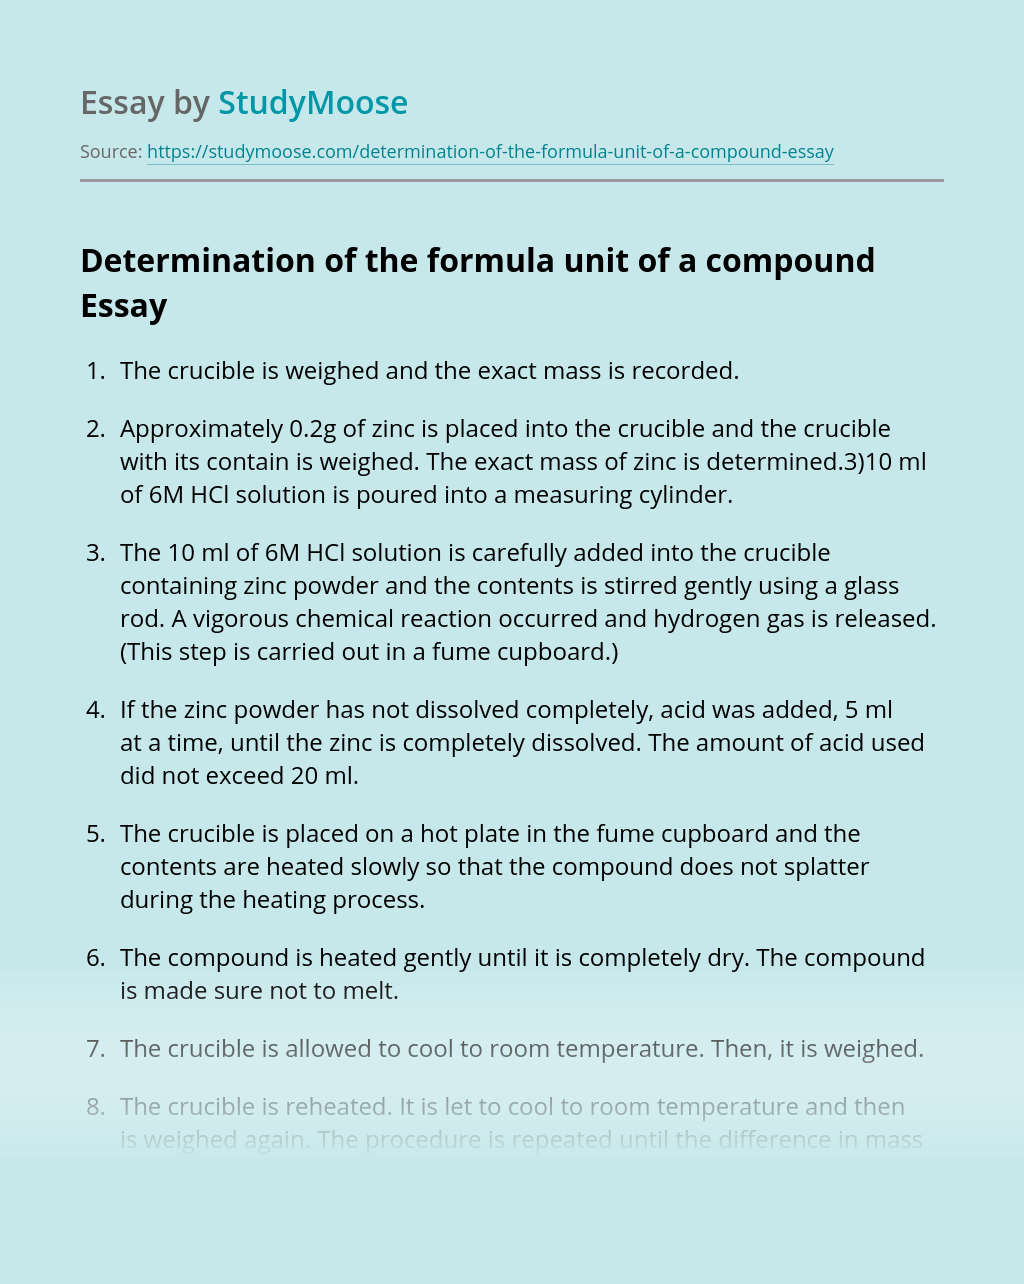 Determination of the formula unit of a compound